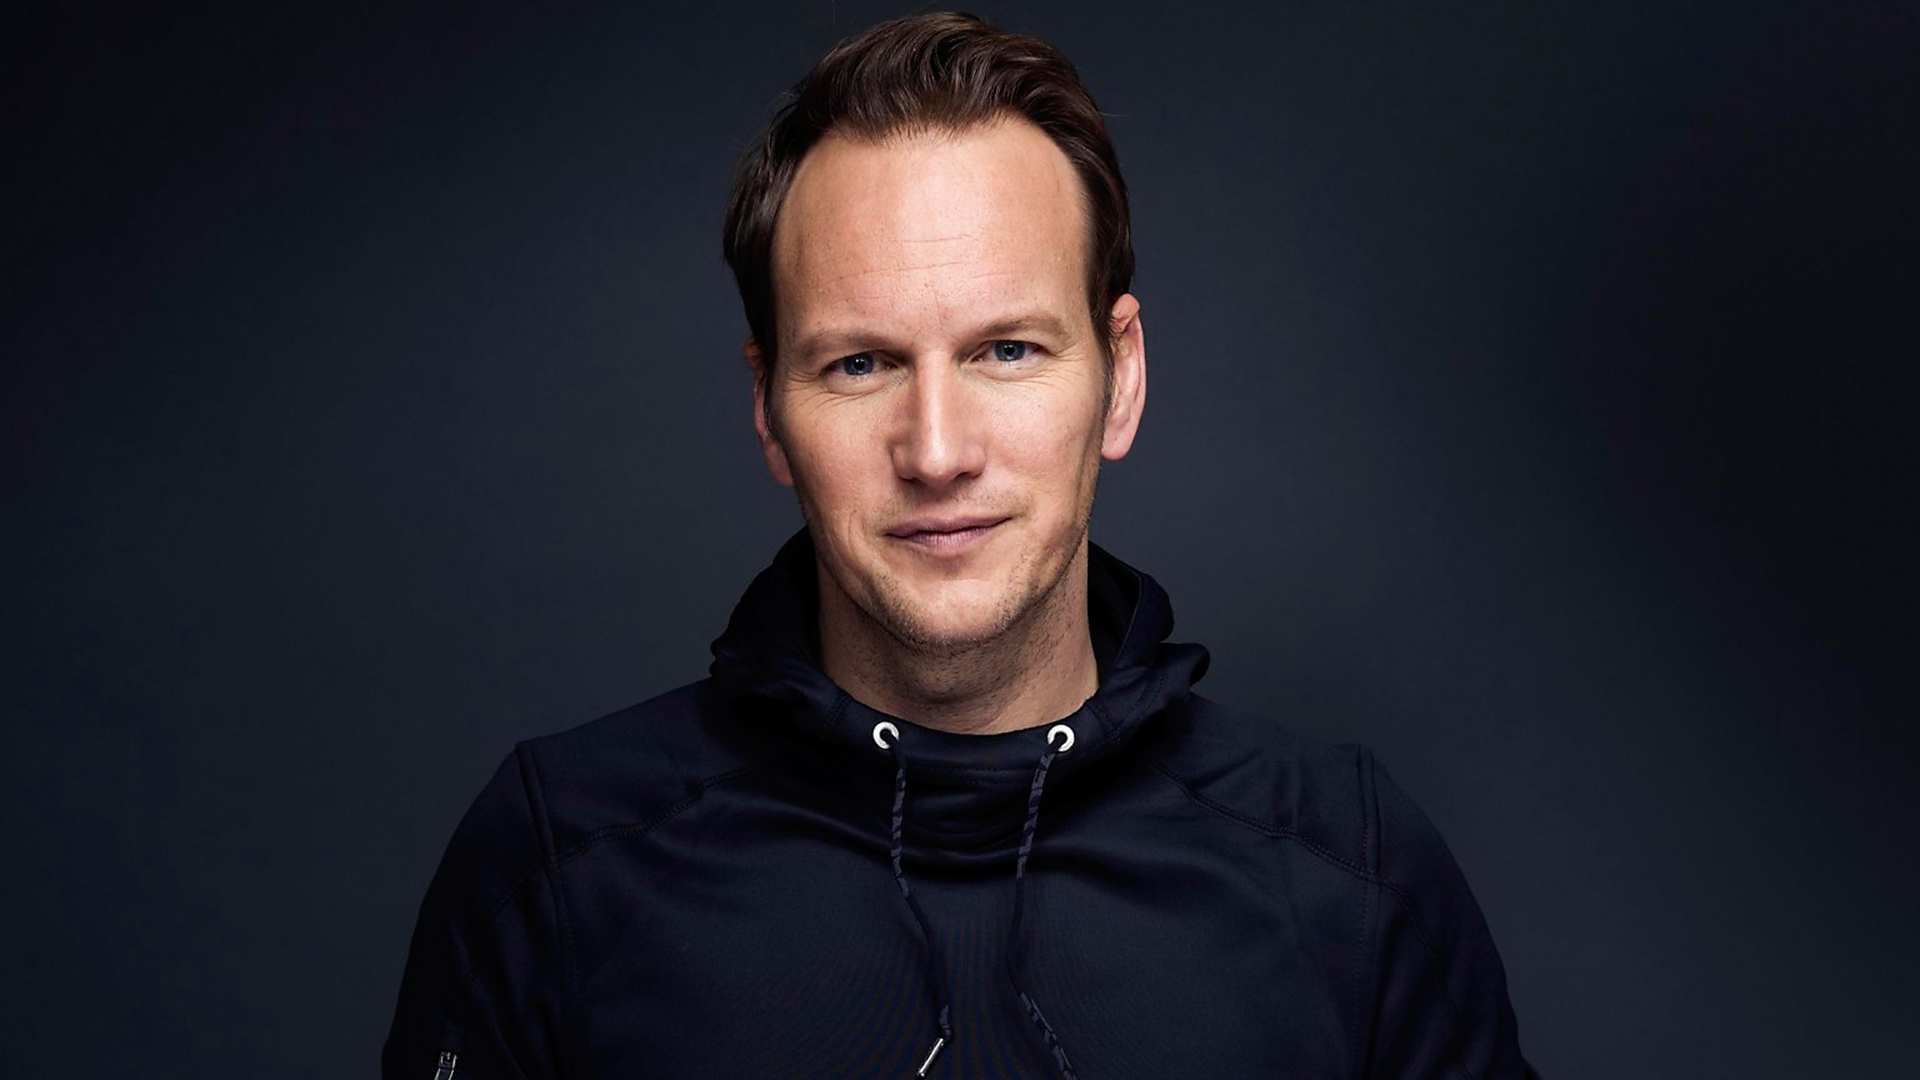 Patrick Wilson High Quality Wallpapers